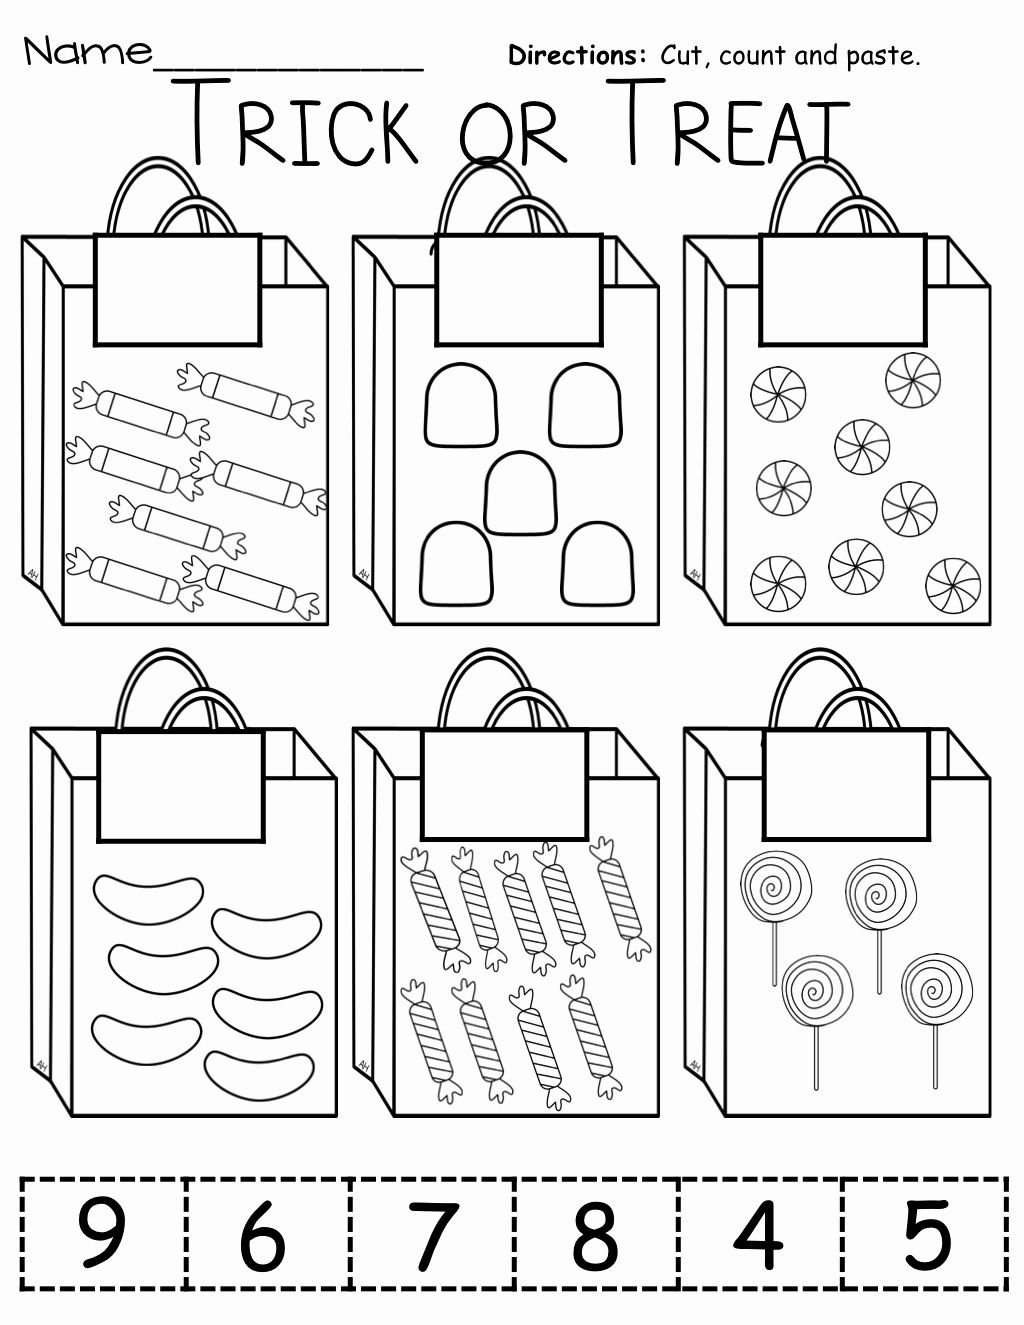 Cut and Paste Worksheets Free Lovely Color Cut and Paste Worksheets